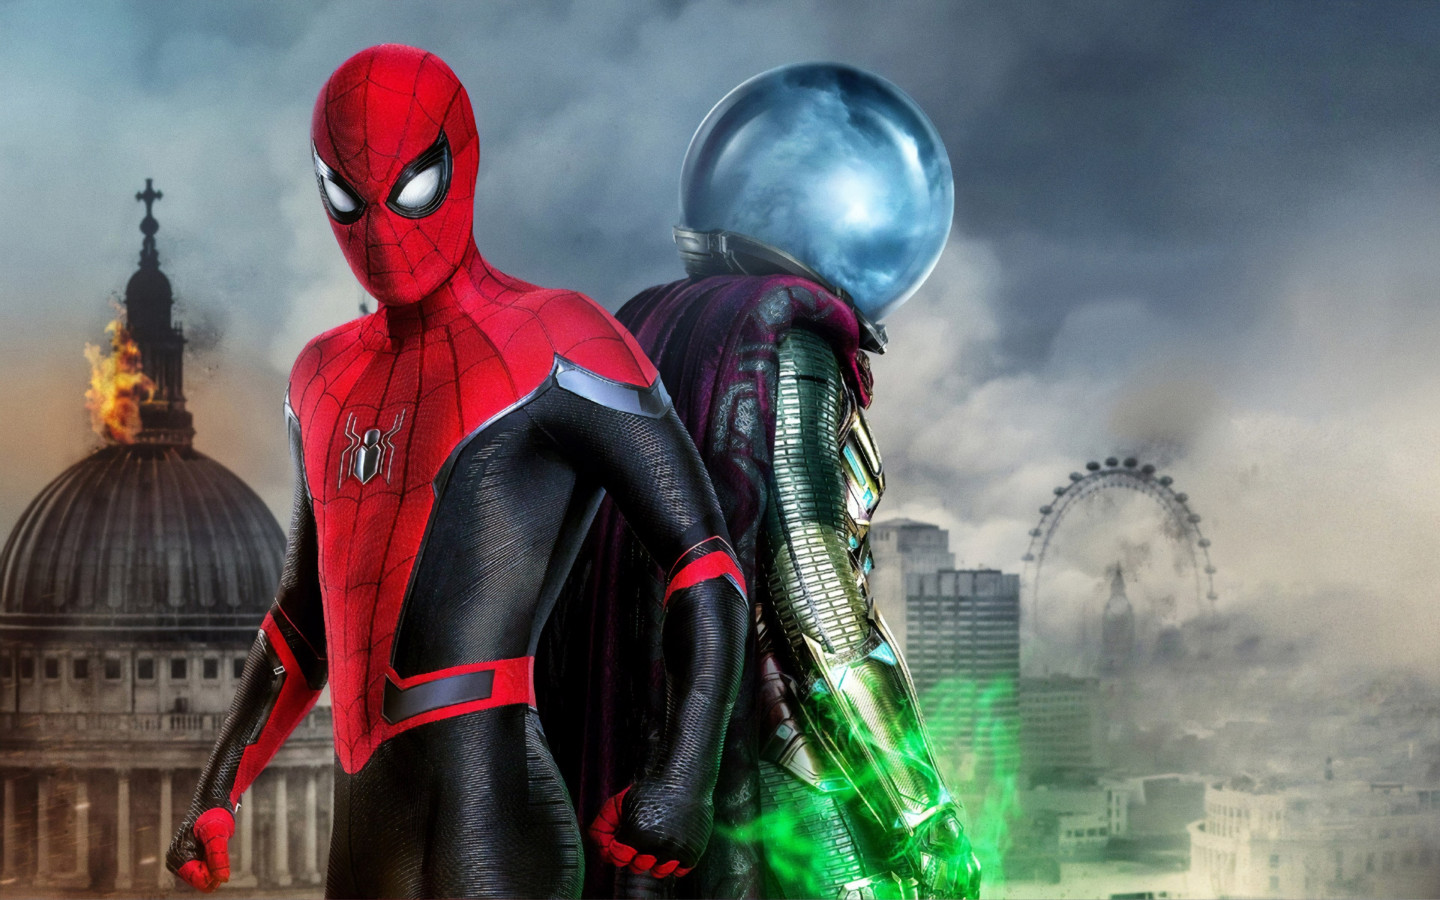 Spider Man and Mysterio | 1440x900 wallpaper